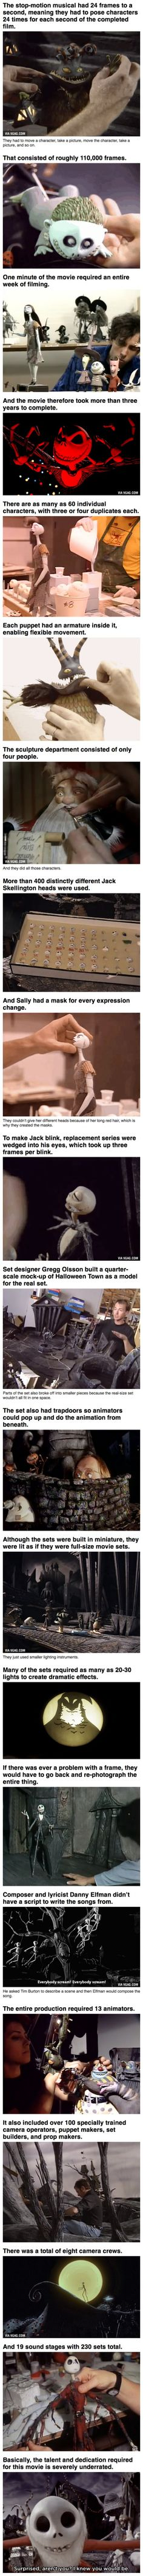 The Nightmare Before Christmas: Behind The Scenes